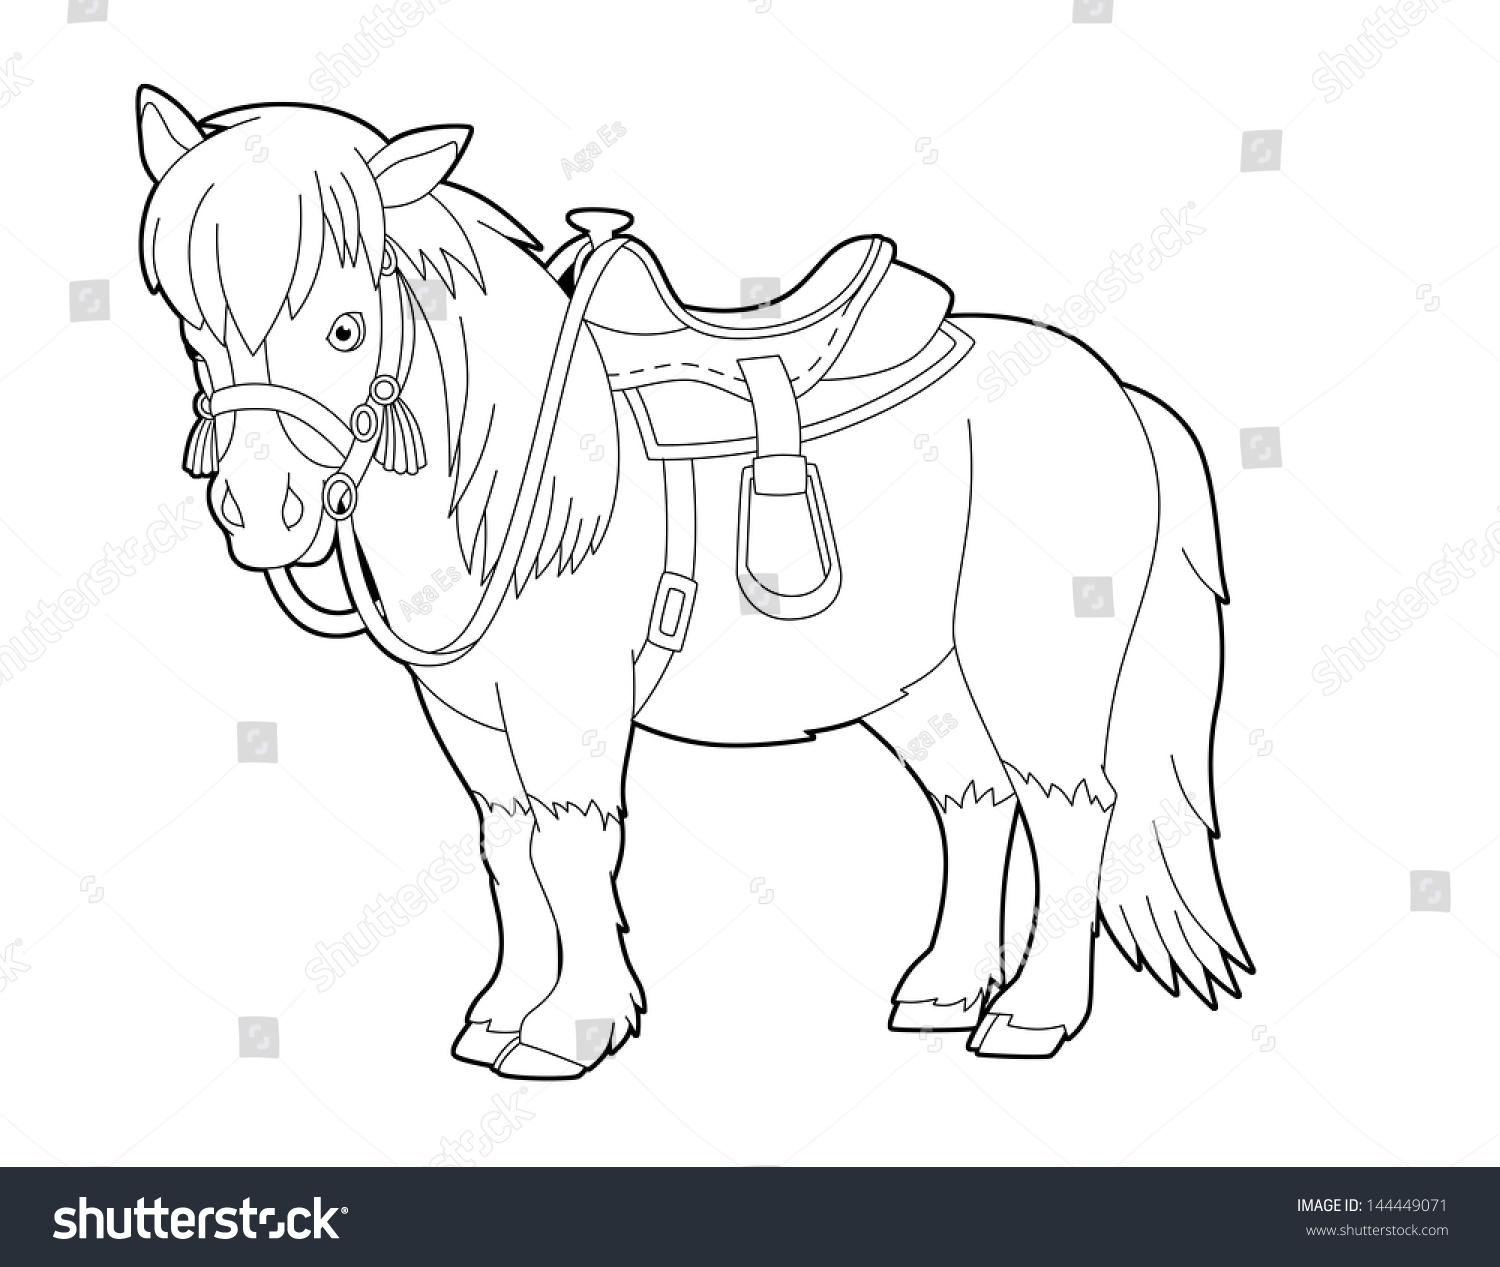 coloring page wild west western template stock illustration